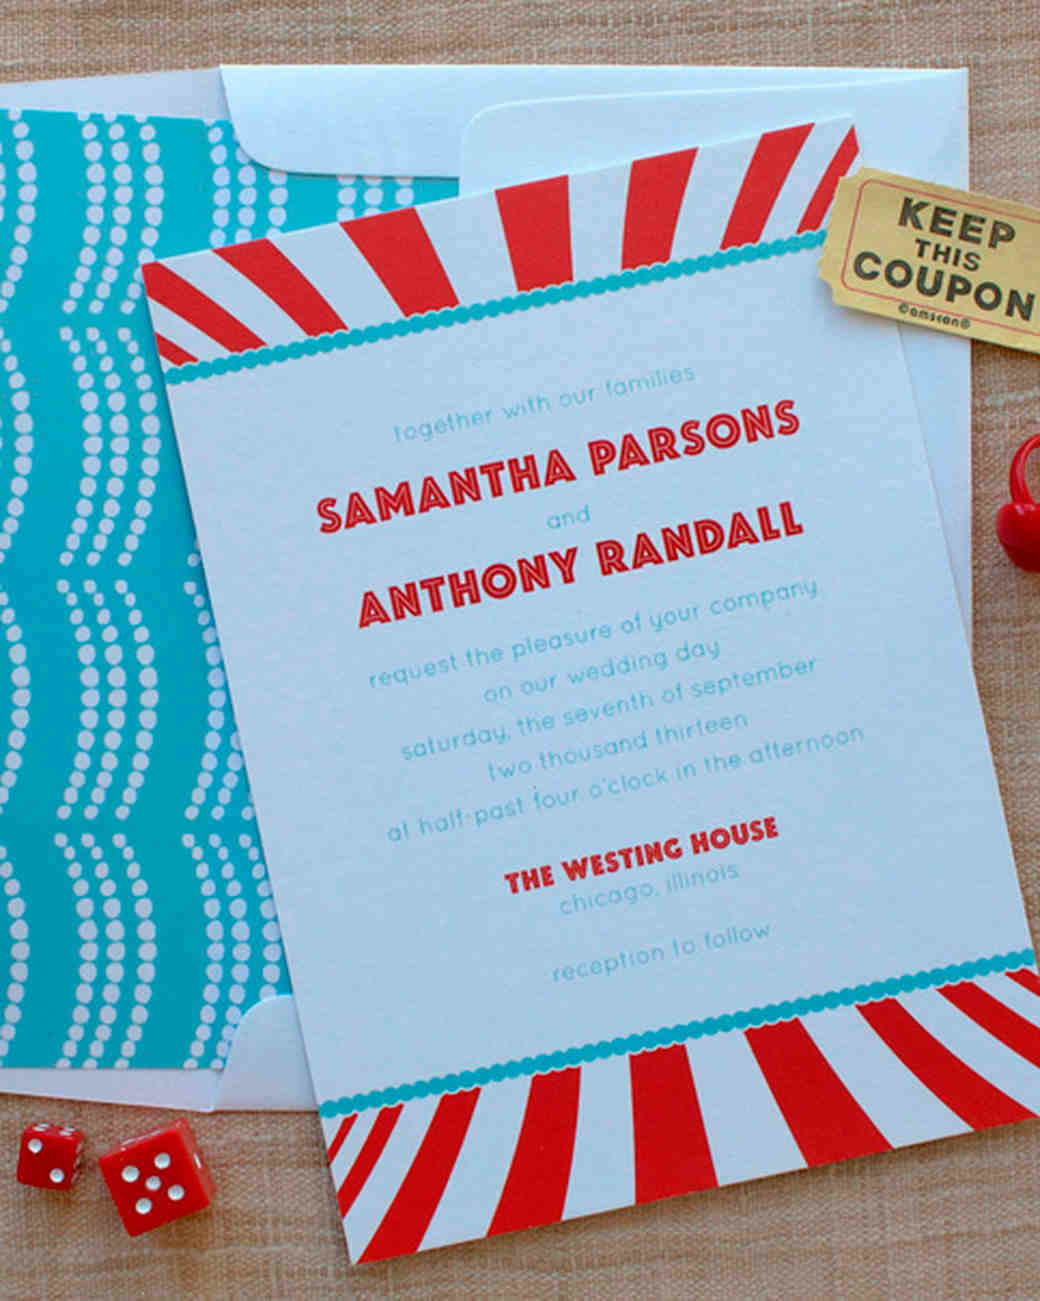 carnival-themed wedding invitation